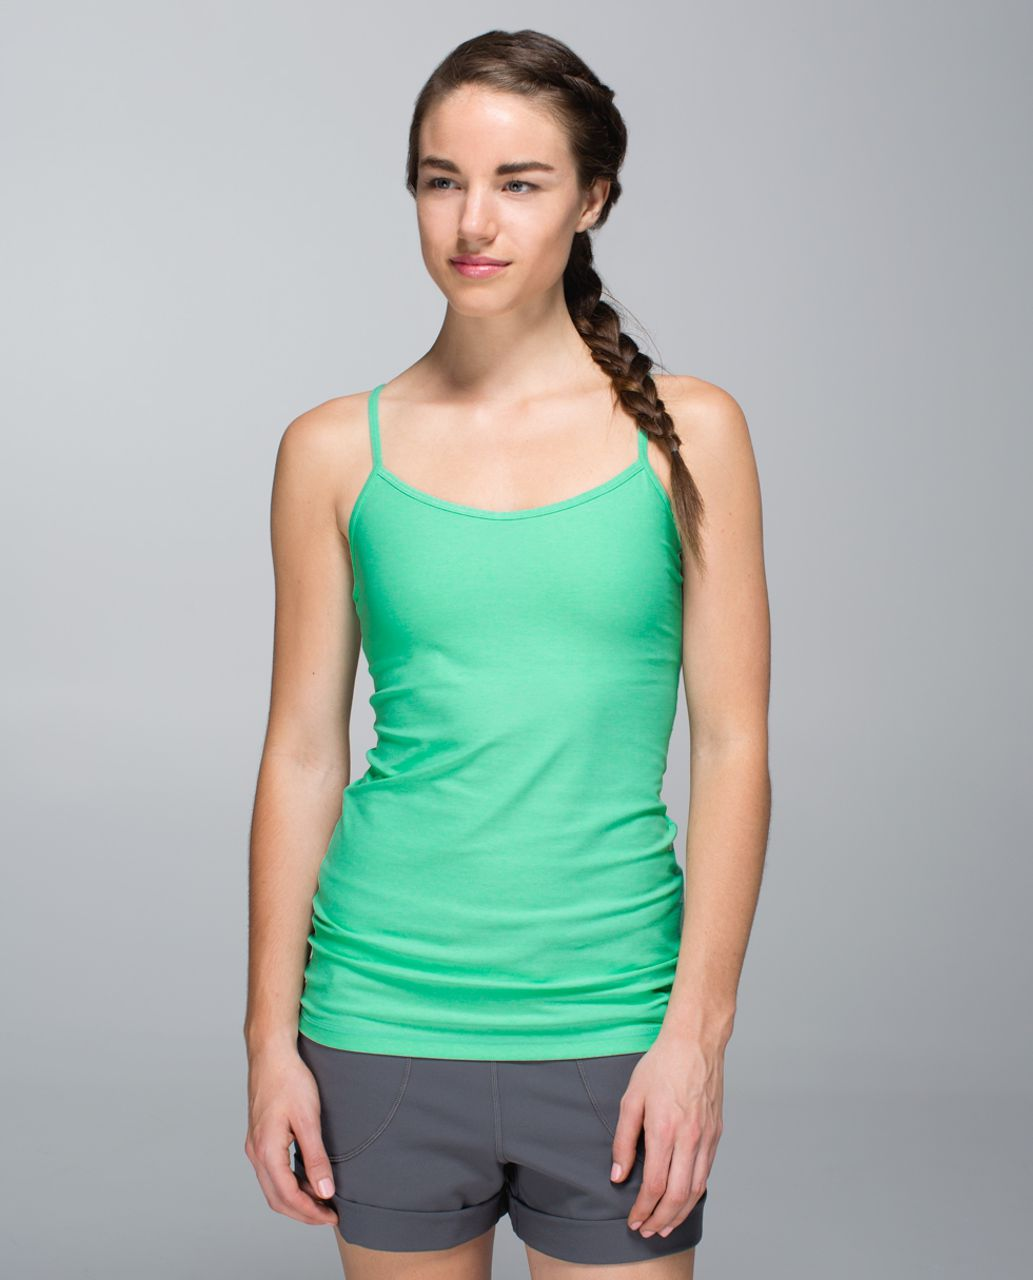 Lululemon Power Y Tank *Luon - Heathered Opal